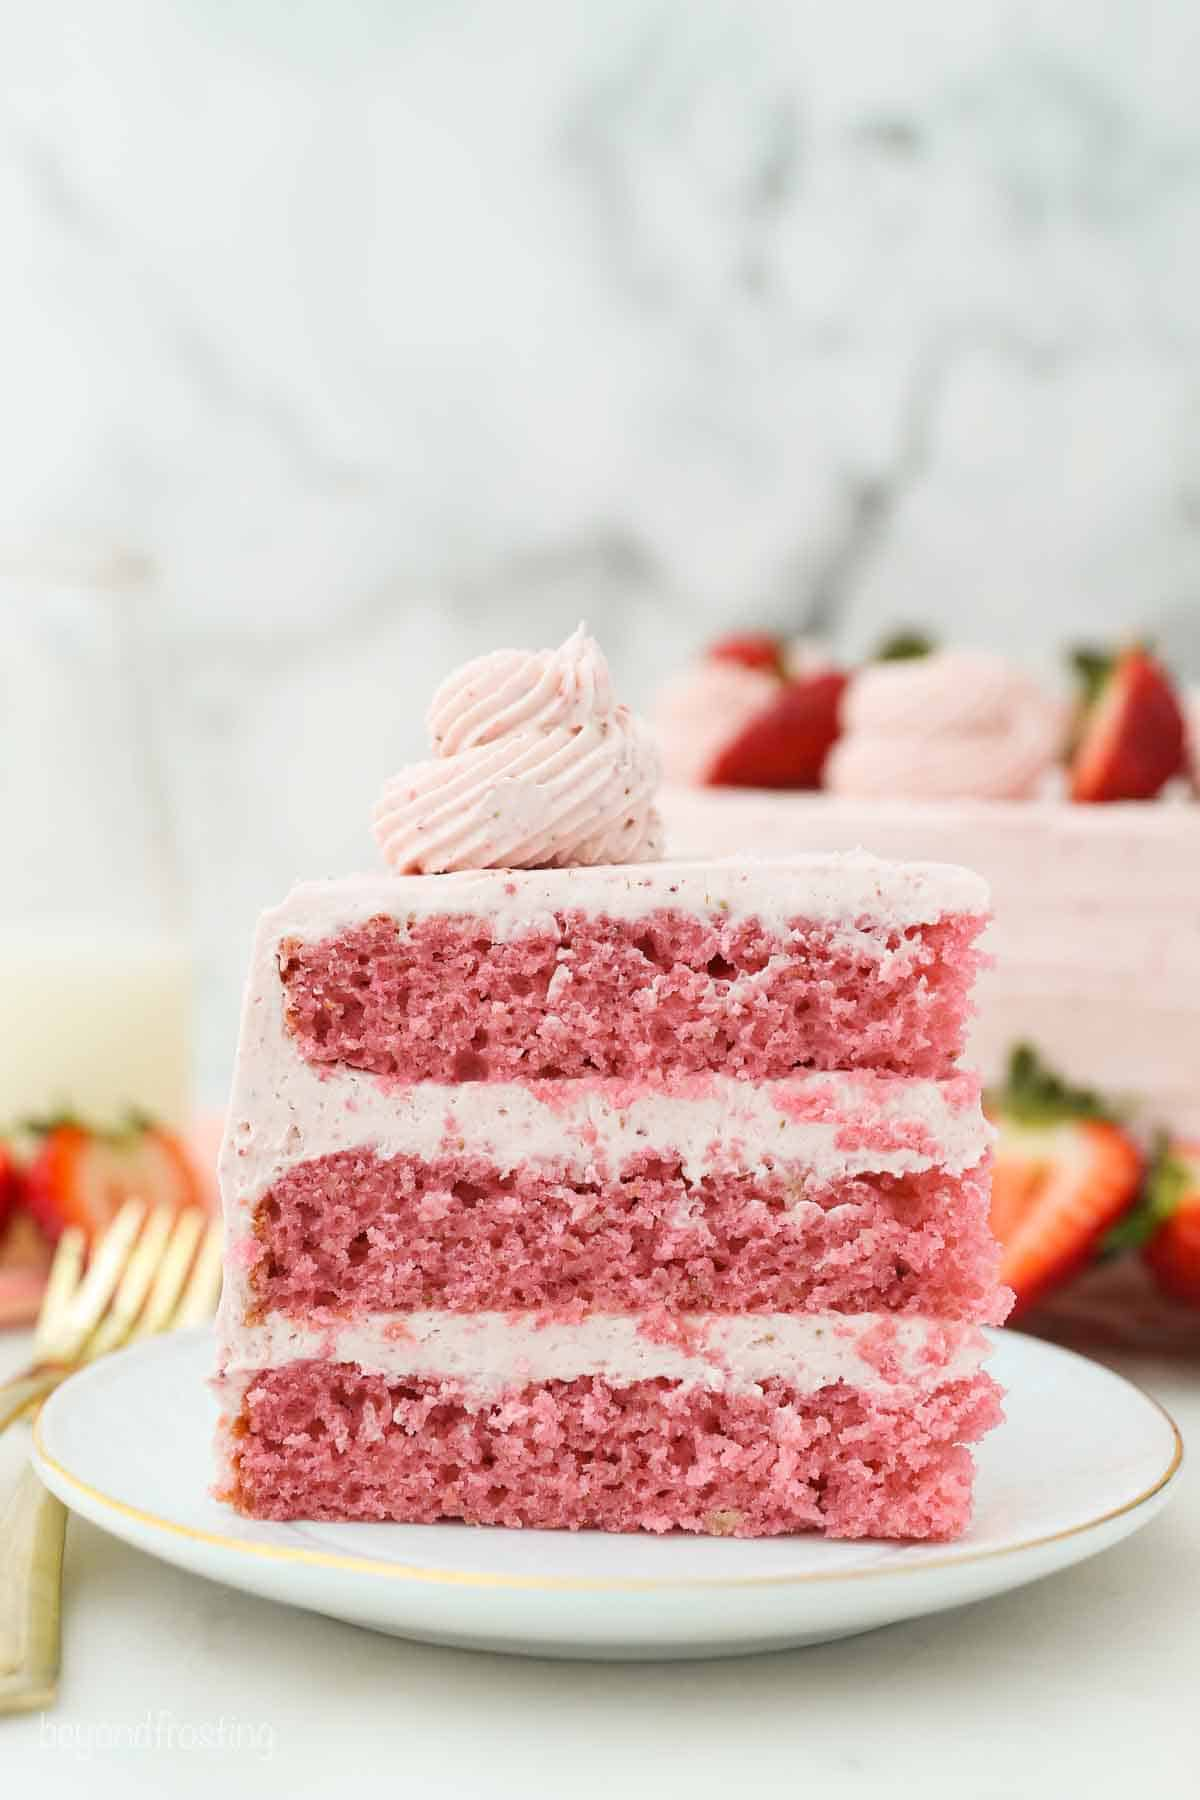 A slice of this three-layer Strawberry Cake with Strawberry Frosting.